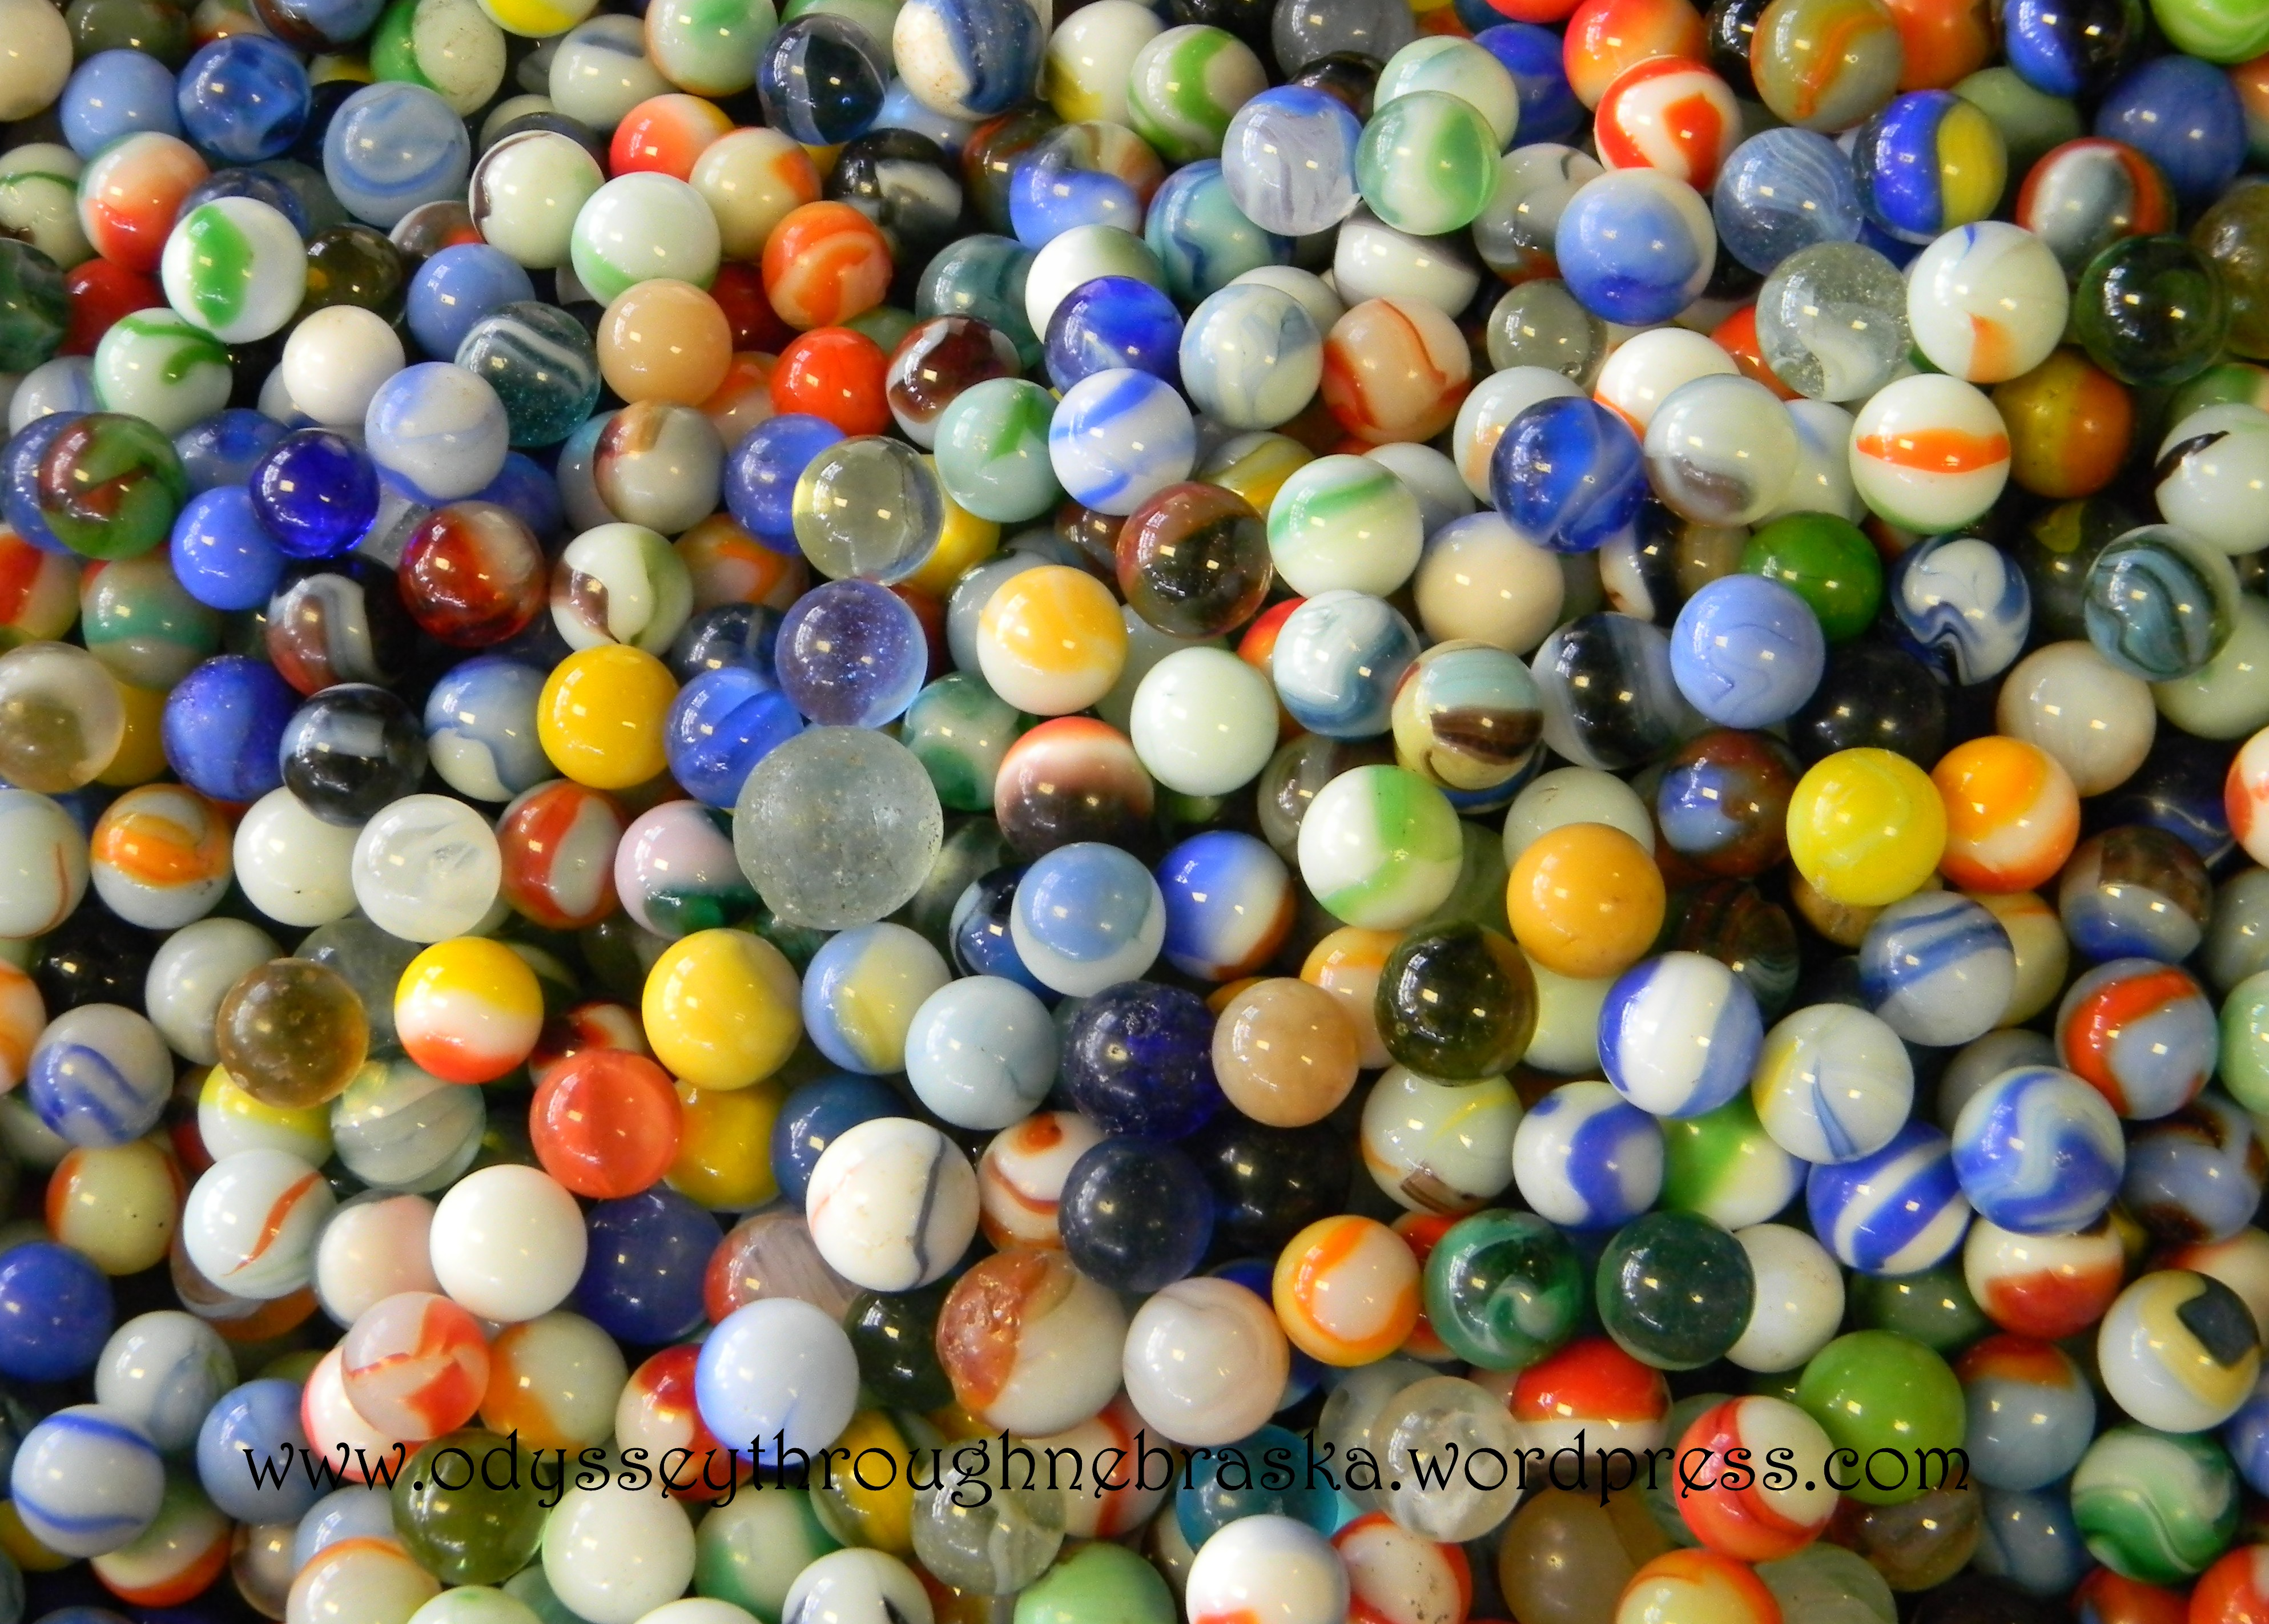 HQ Marbles Wallpapers | File 1930.49Kb